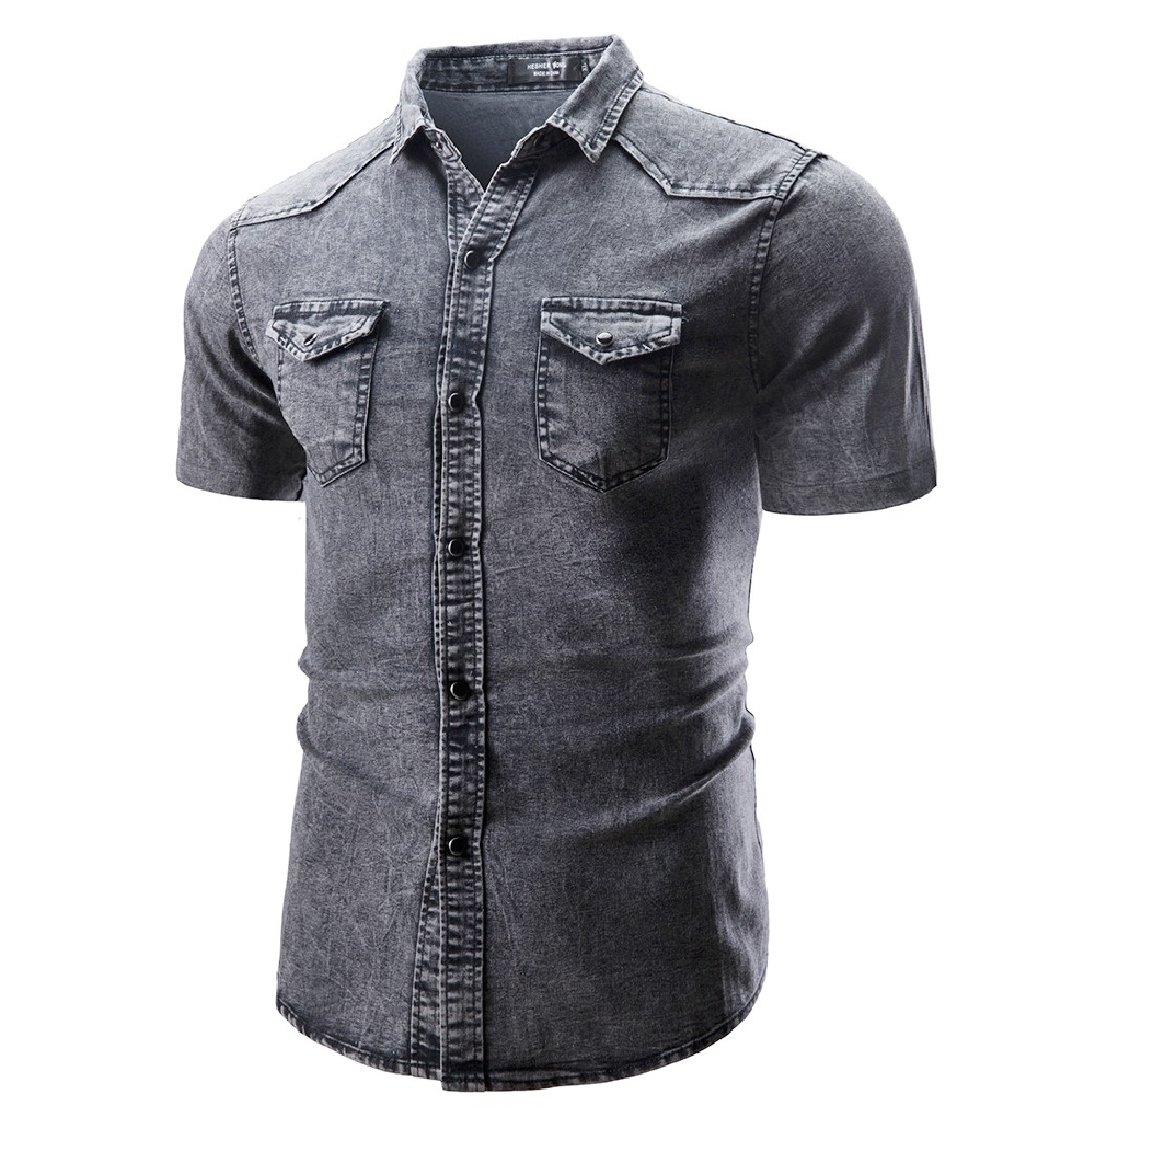 Romantc Mens Casual Fit Turn Down Collar Jean Buttoned Short Sleeve Shirts